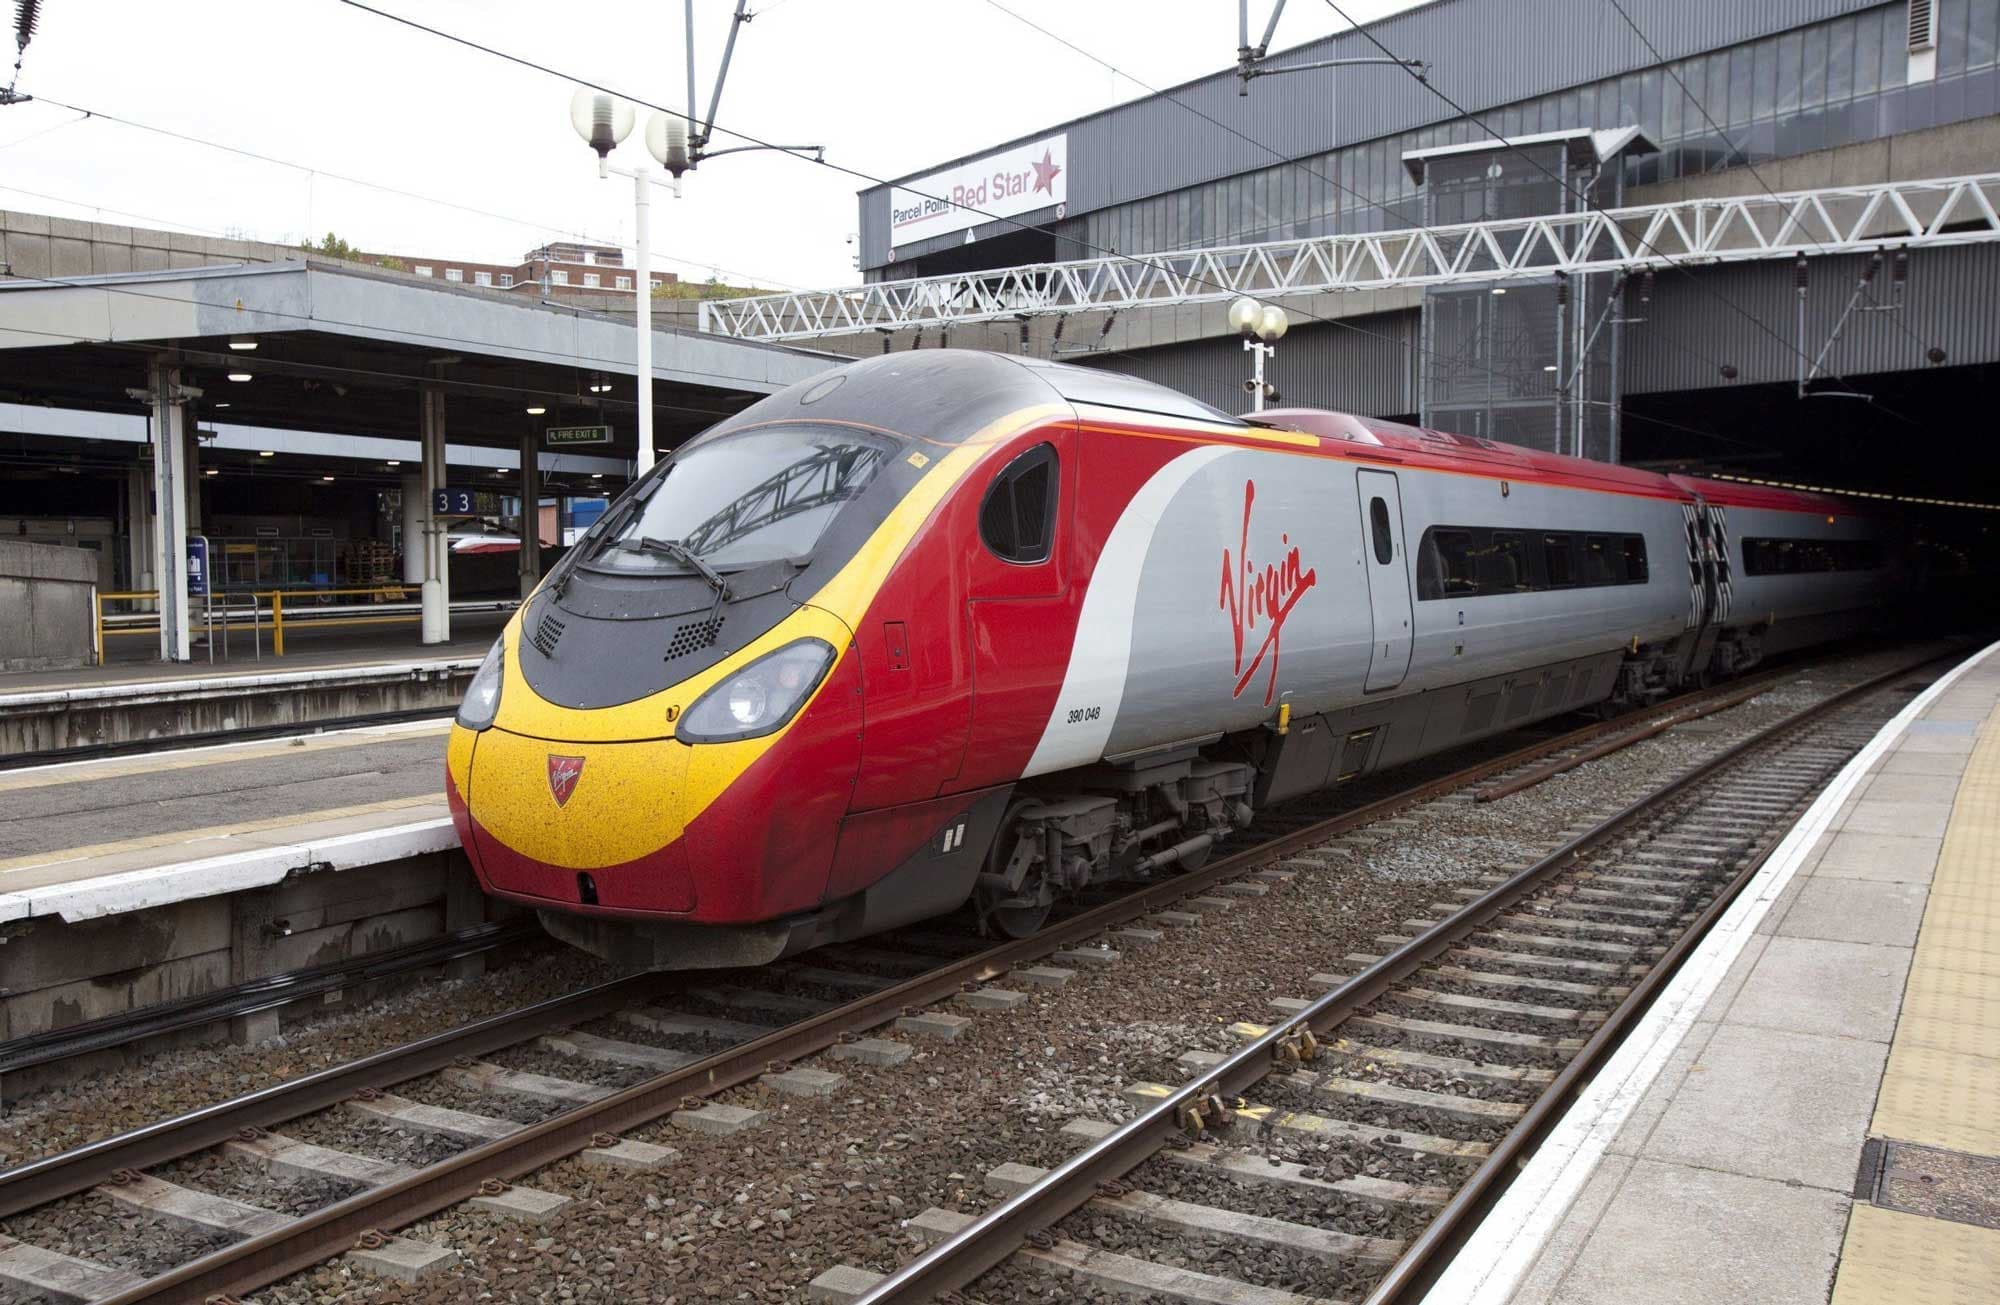 A photo of a Virgin branded train.